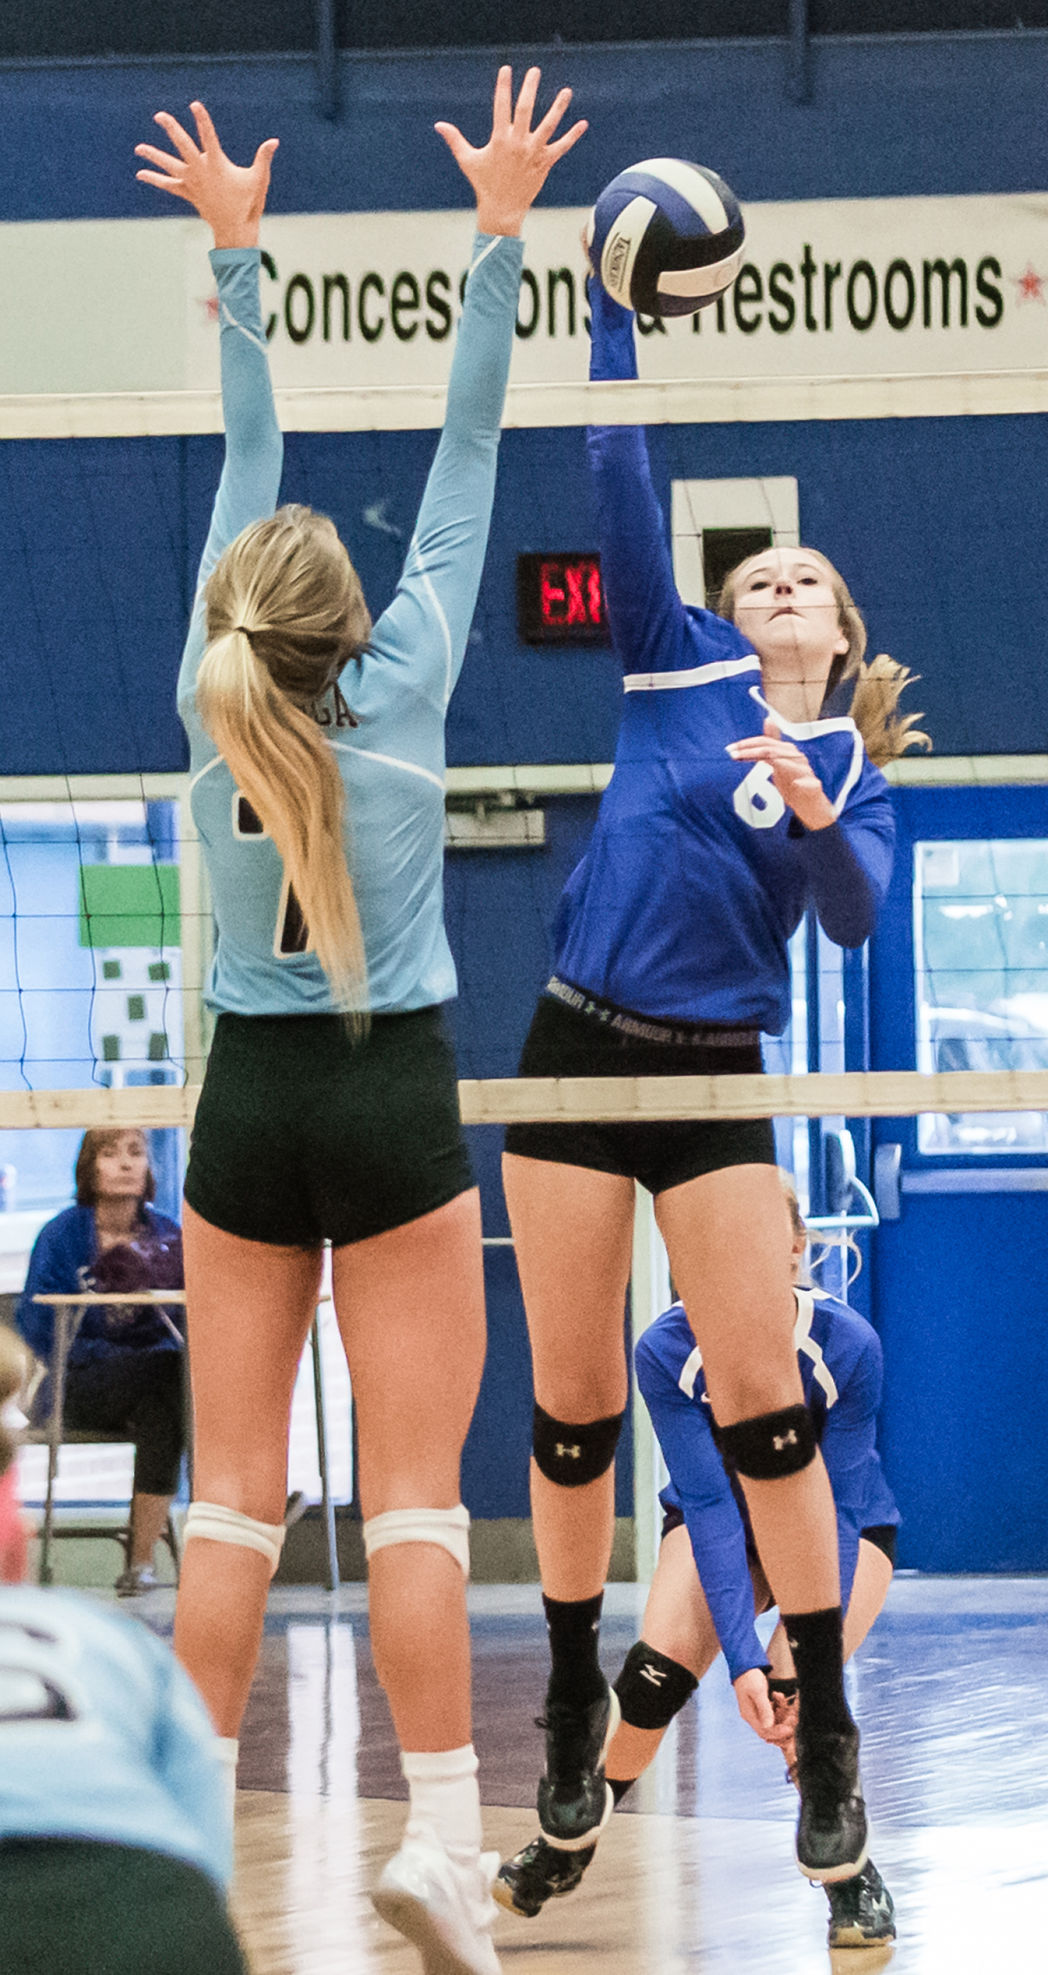 Important win: Lady Titans blank West Caldwell in NWC match